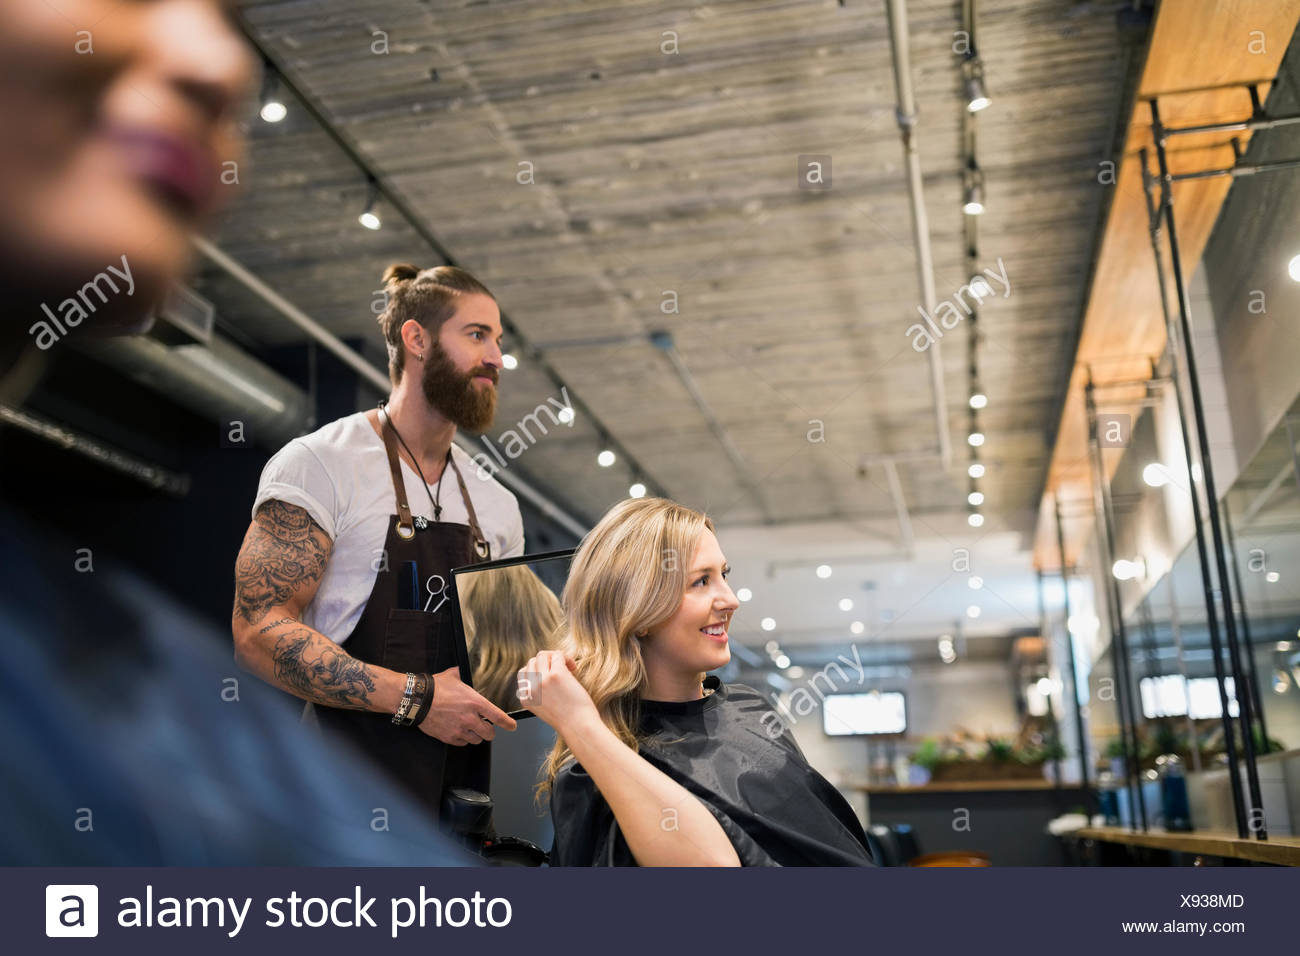 Hairstylist showing woman hair with mirror hair salon - Stock Image